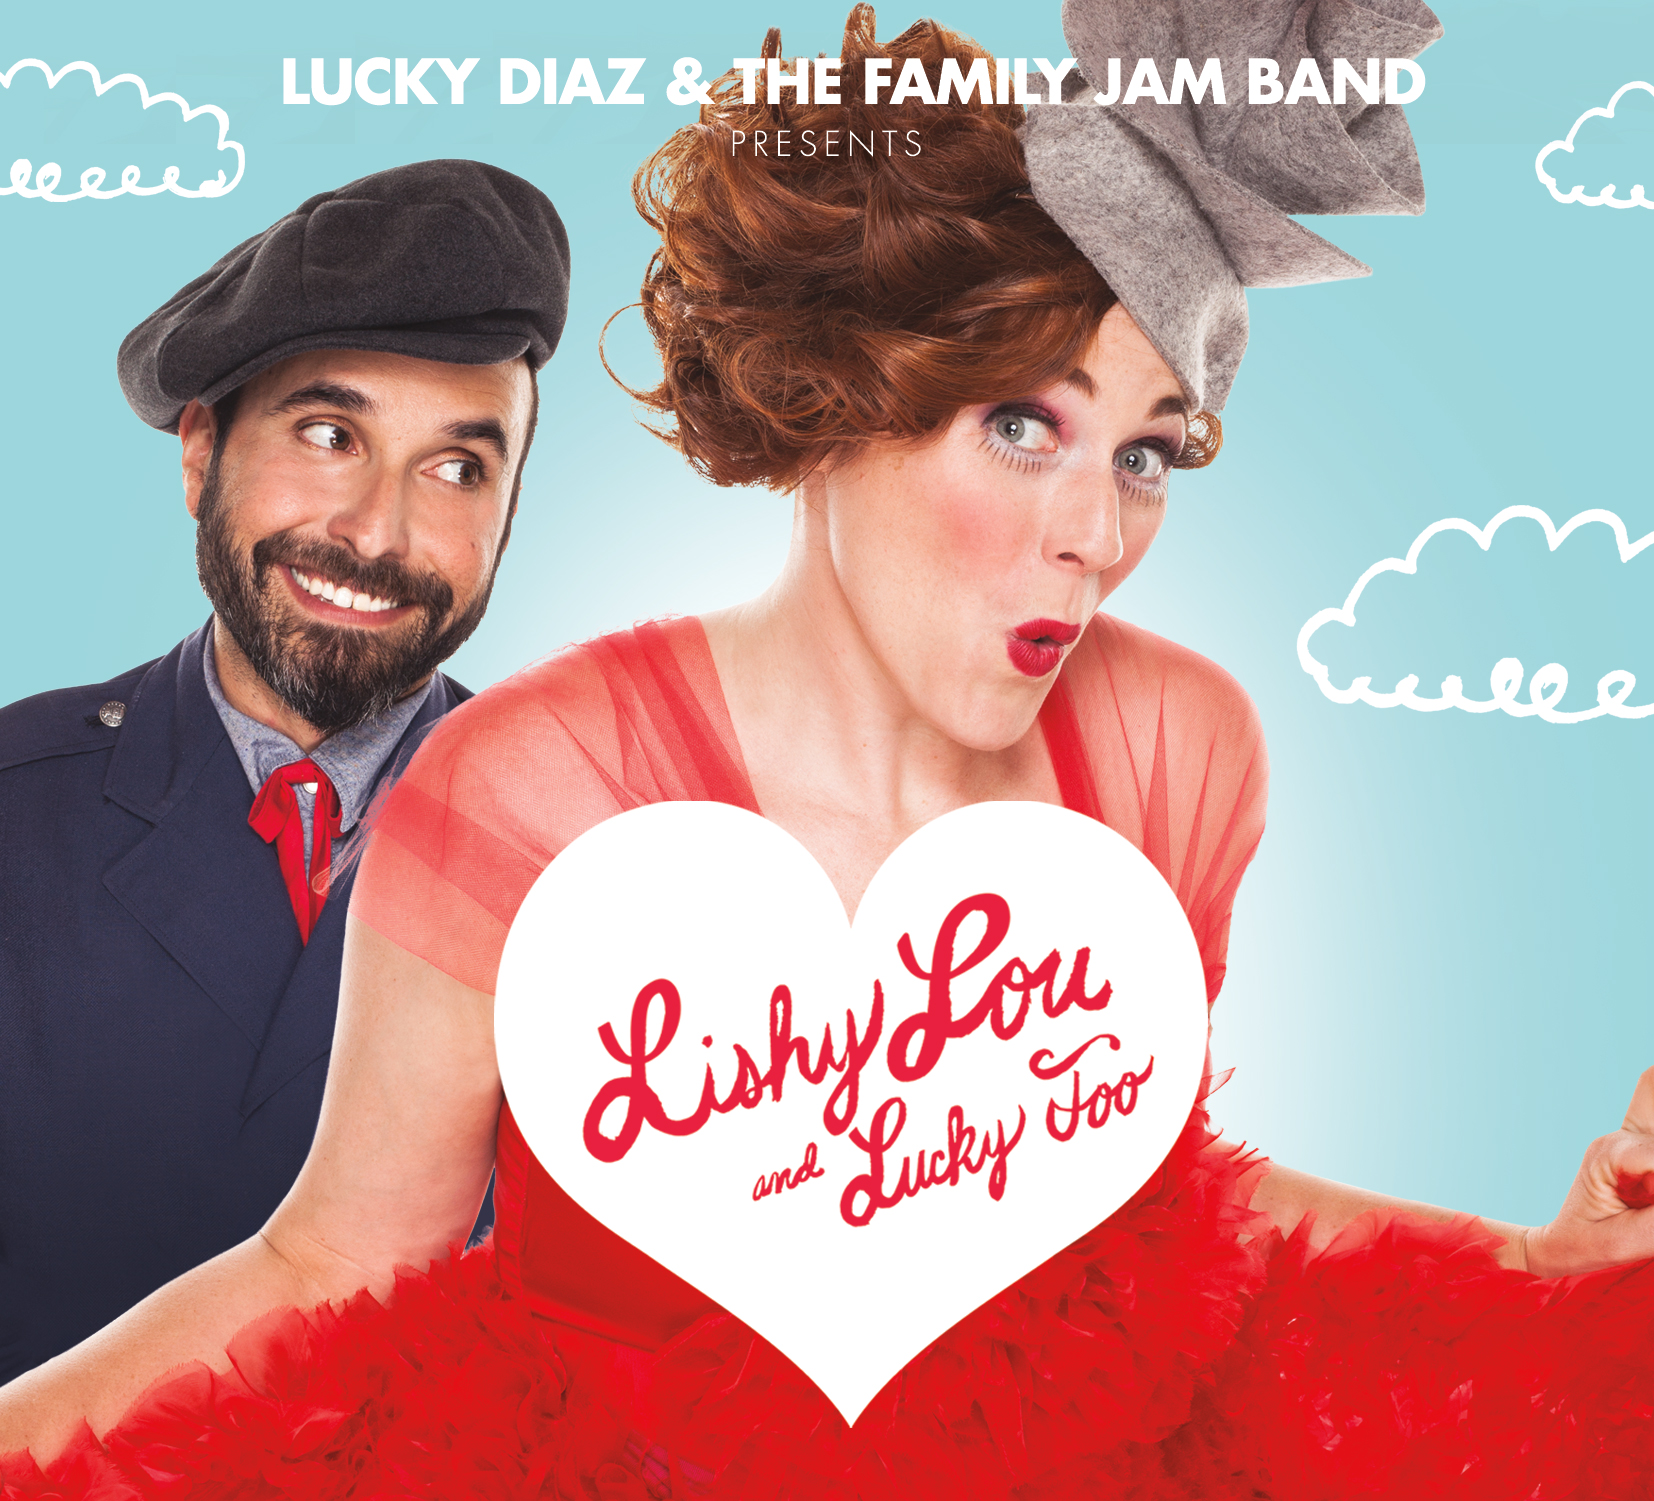 Lishy Lou and Lucky Too. a new album from Lucky Diaz and The Family Jam Band-Coming soon!